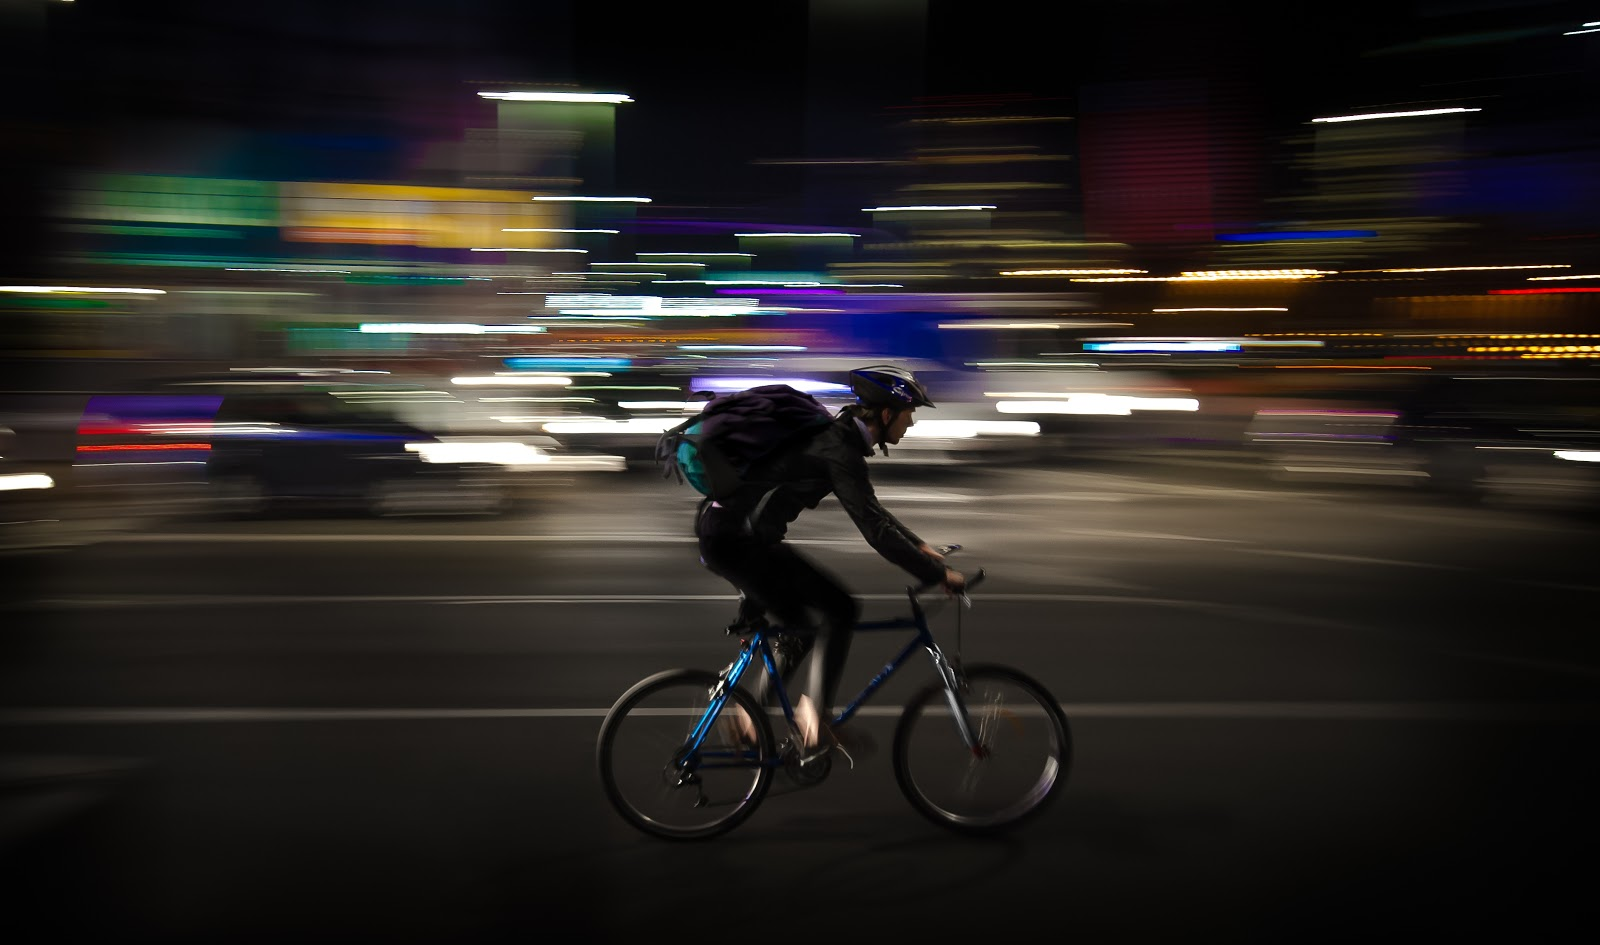 "Bicycle couriers can deliver packages in crowded urban areas quickly. - <a href=""https://pixabay.com/en/courier-night-panning-warsaw-1214227/"">image source</a>"